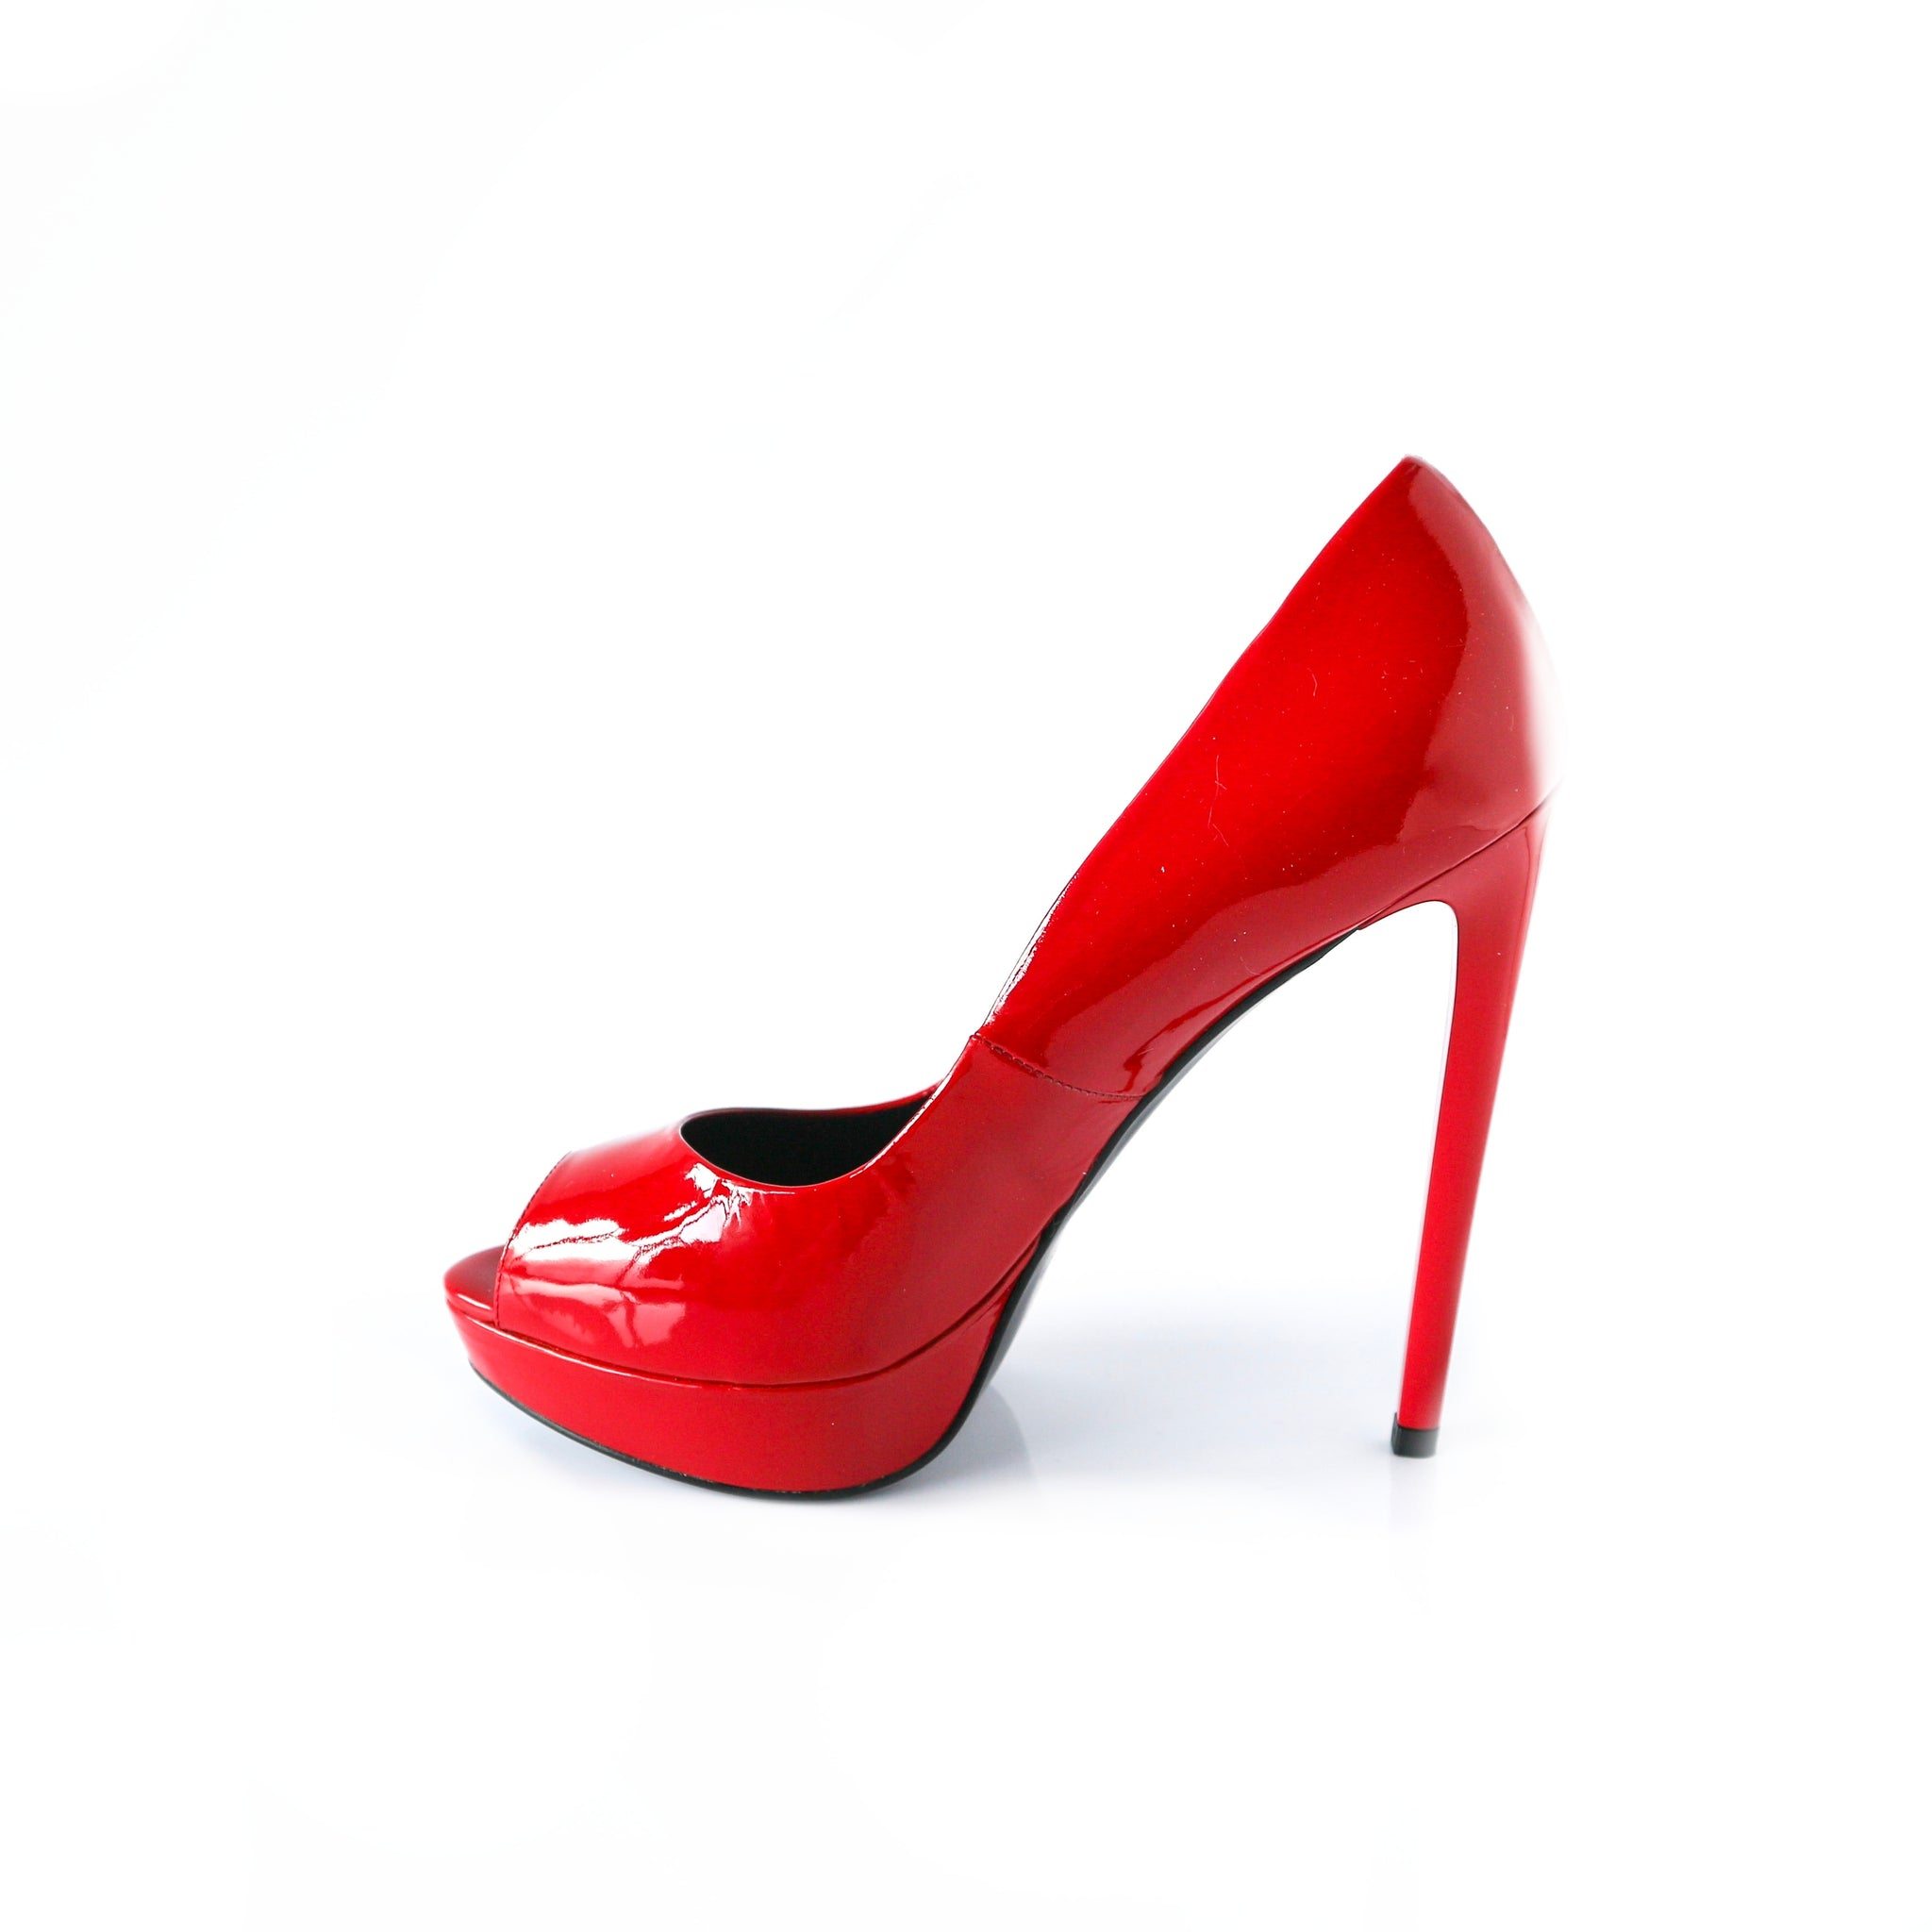 LUXE | Red High Heels - TrystShoes